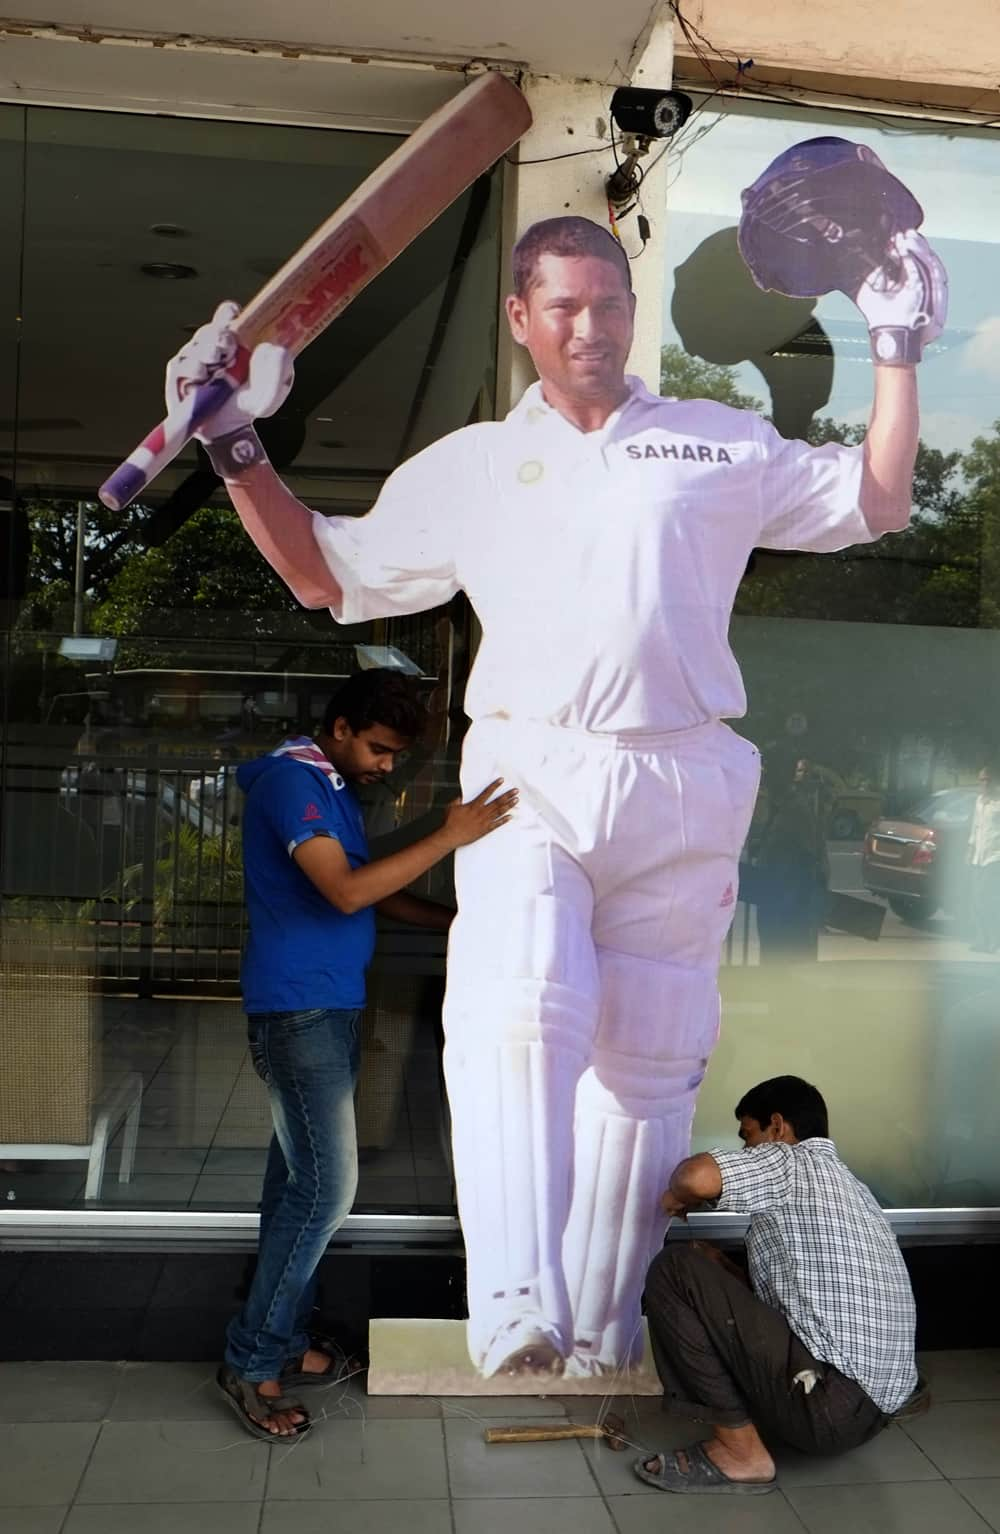 Workers erect a cut-out of Sachin Tendulkar at the entrance to Eden Gardens, the venue of the first test match between India and West Indies, in Kolkata.